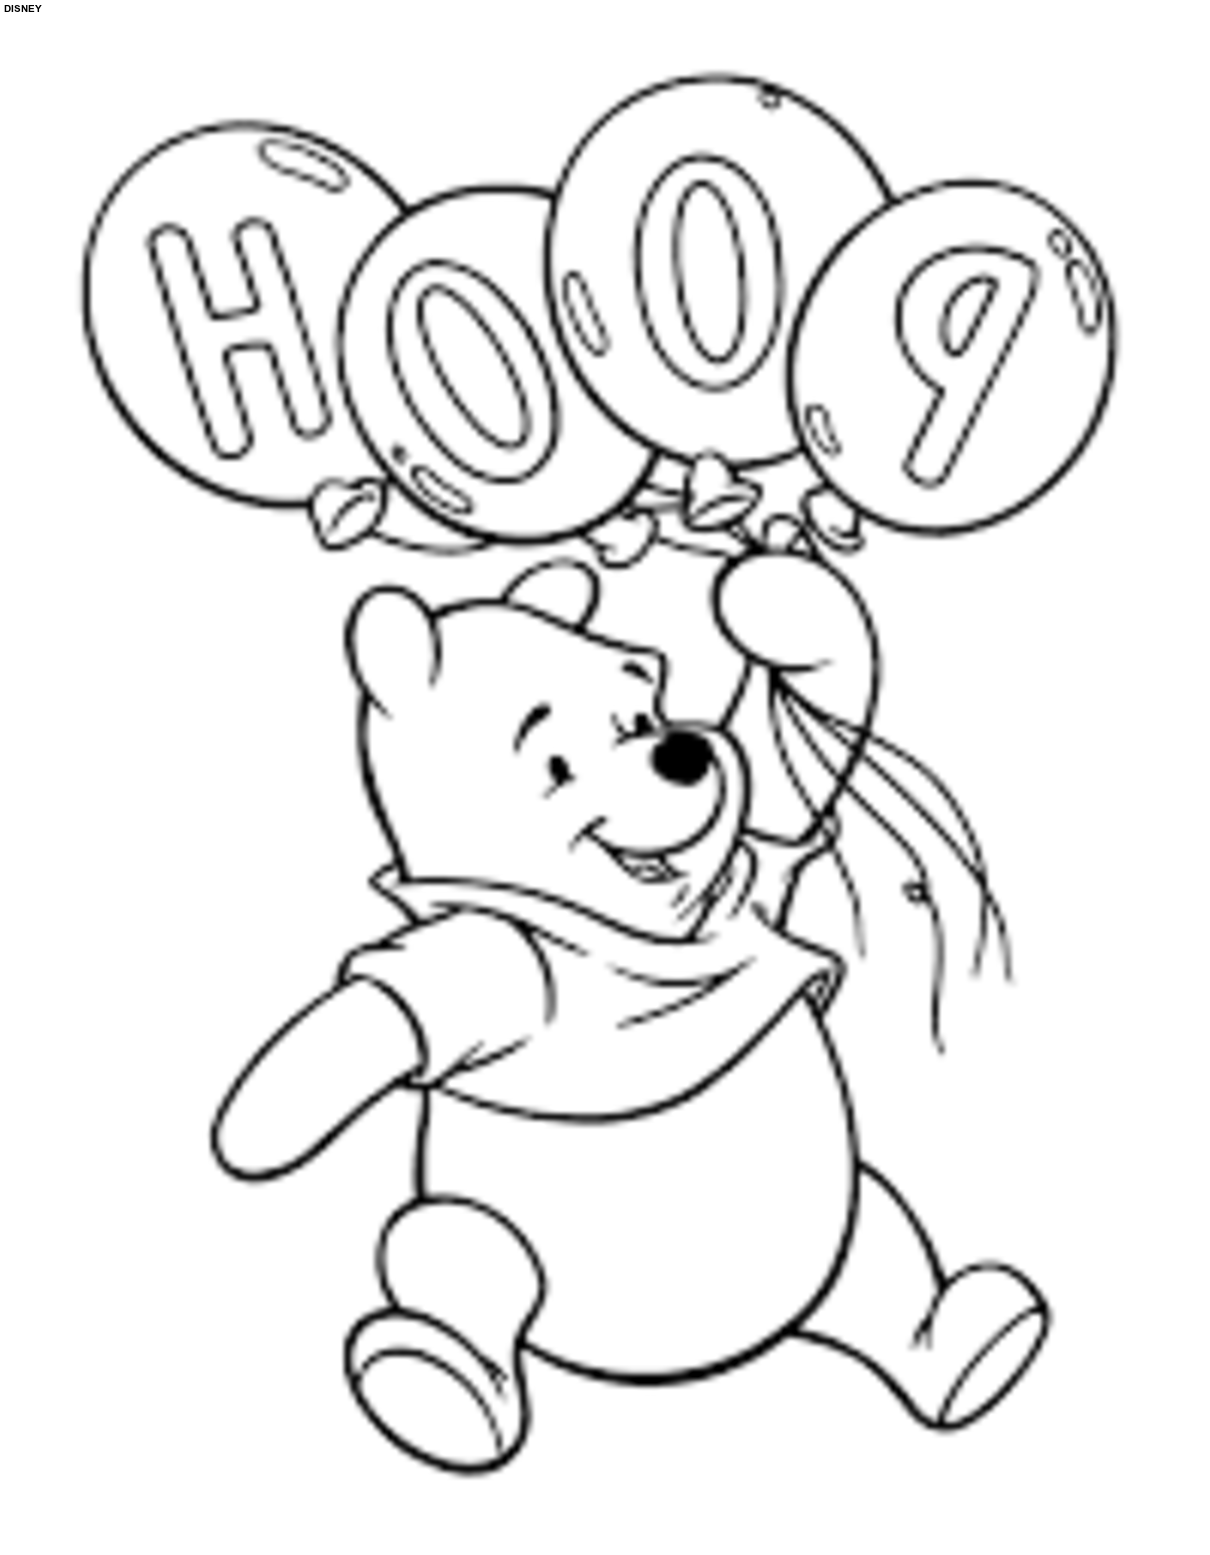 disney colouring pages cartoon characters coloring pages for boy and